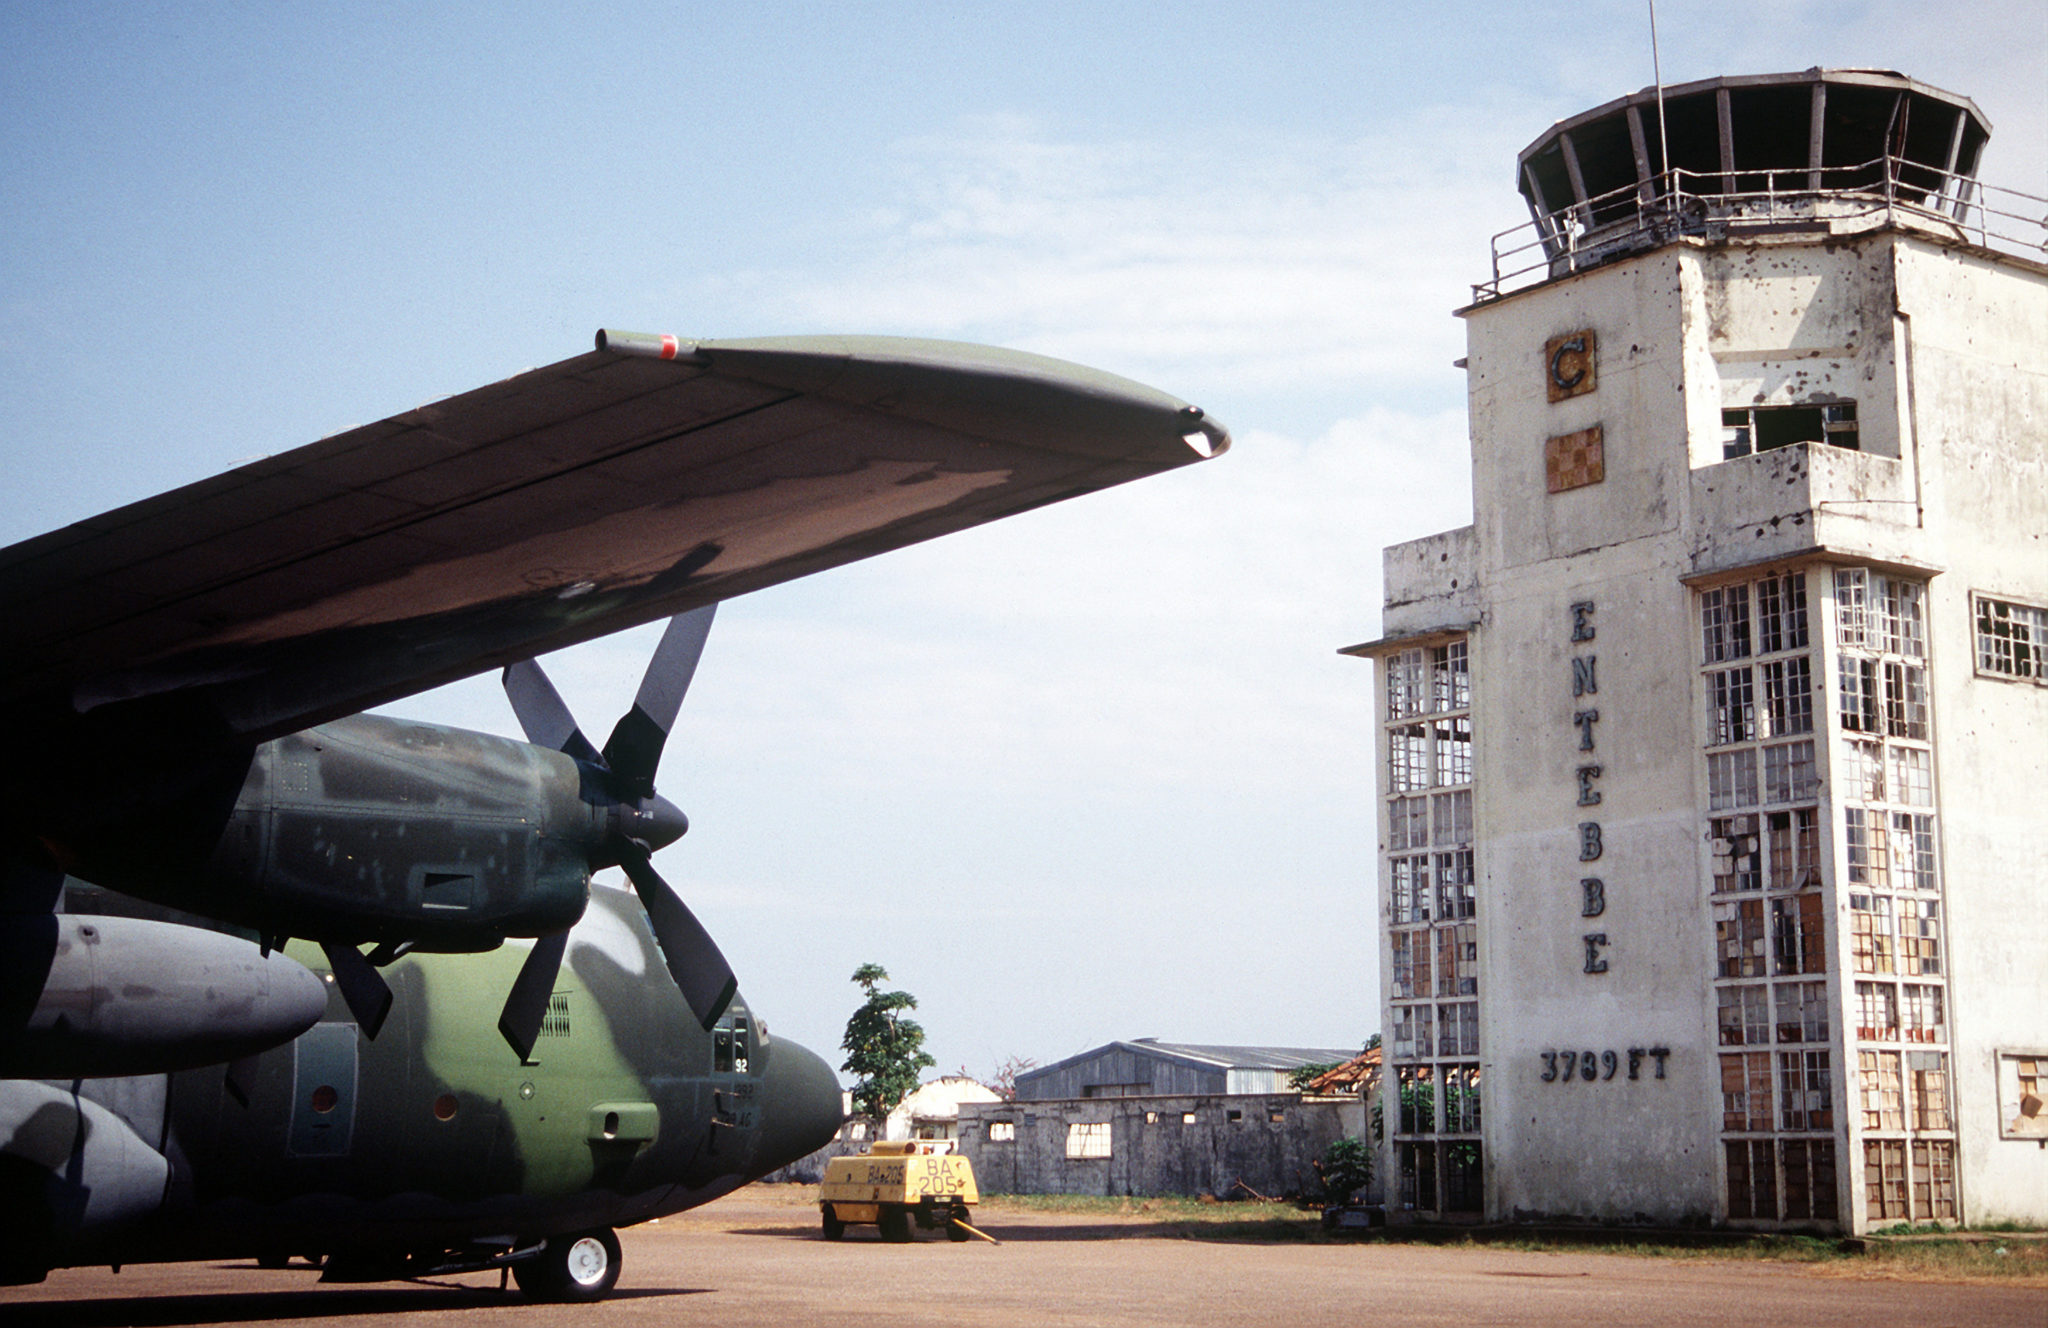 A C-130 Hercules in front of the old terminal in 1994. Bullet holes from the 1976 raid are still visible.